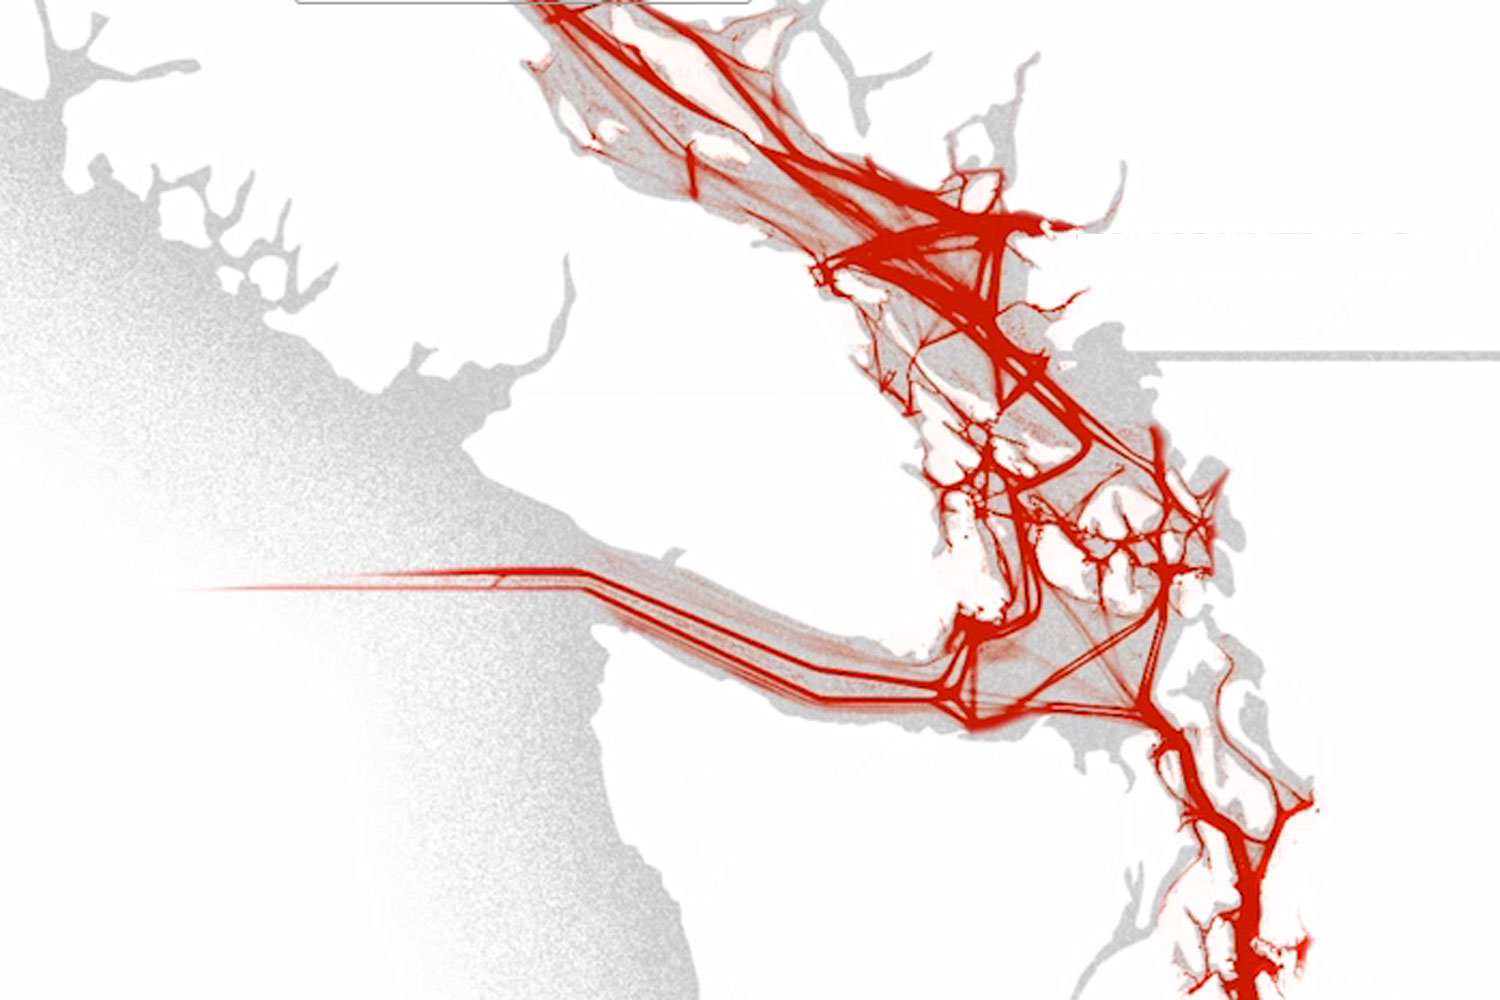 This map shows the path of commercial ships through the Salish Sea, including oil tankers going to and from Kinder Morgan's Westridge Marine Terminal in Burnaby.